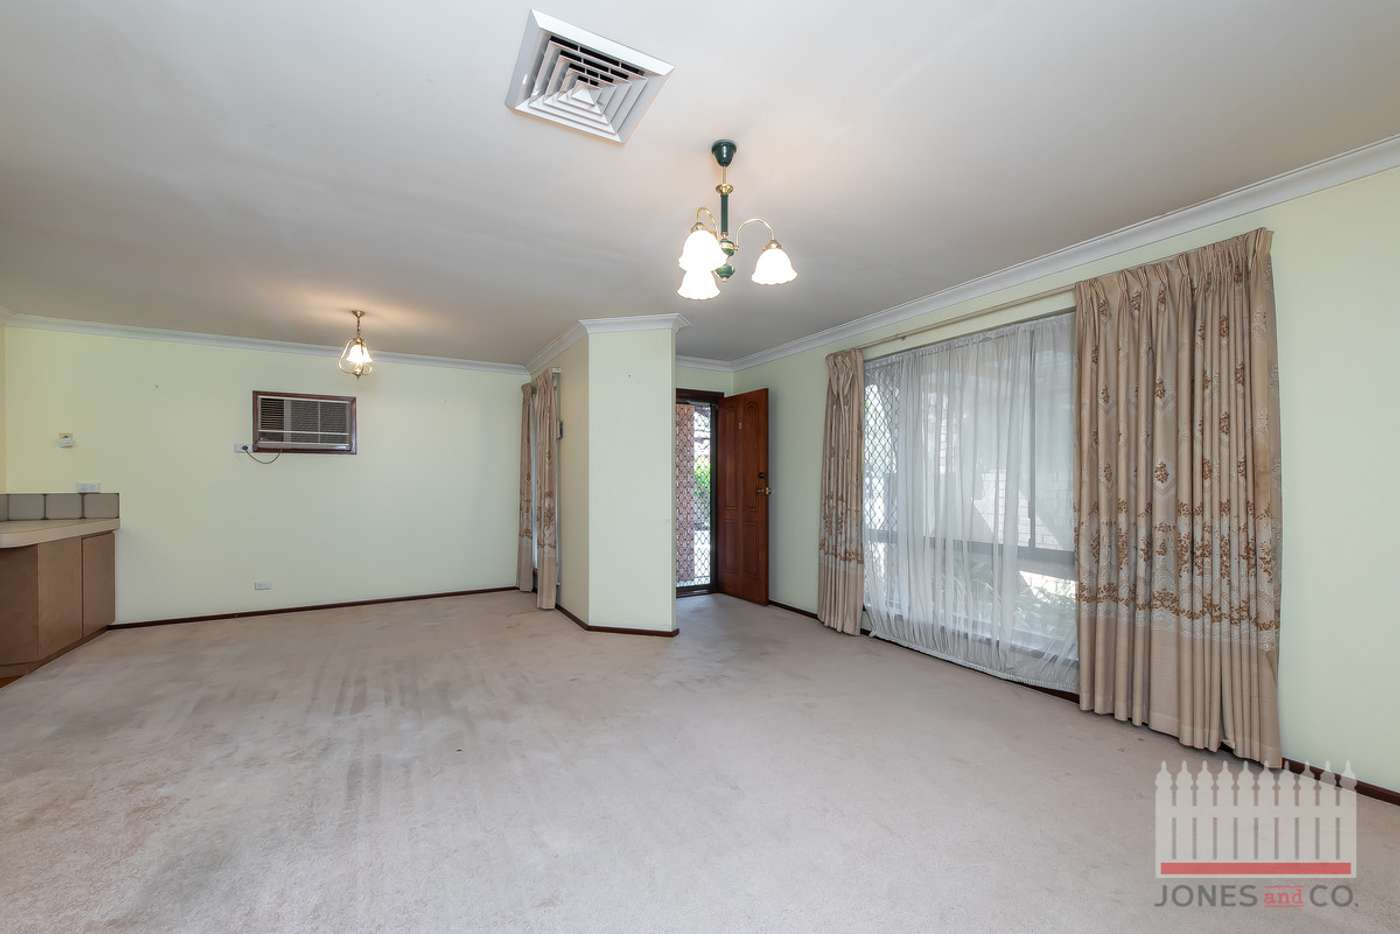 Fifth view of Homely villa listing, 6/117 Old Perth Road, Bassendean WA 6054